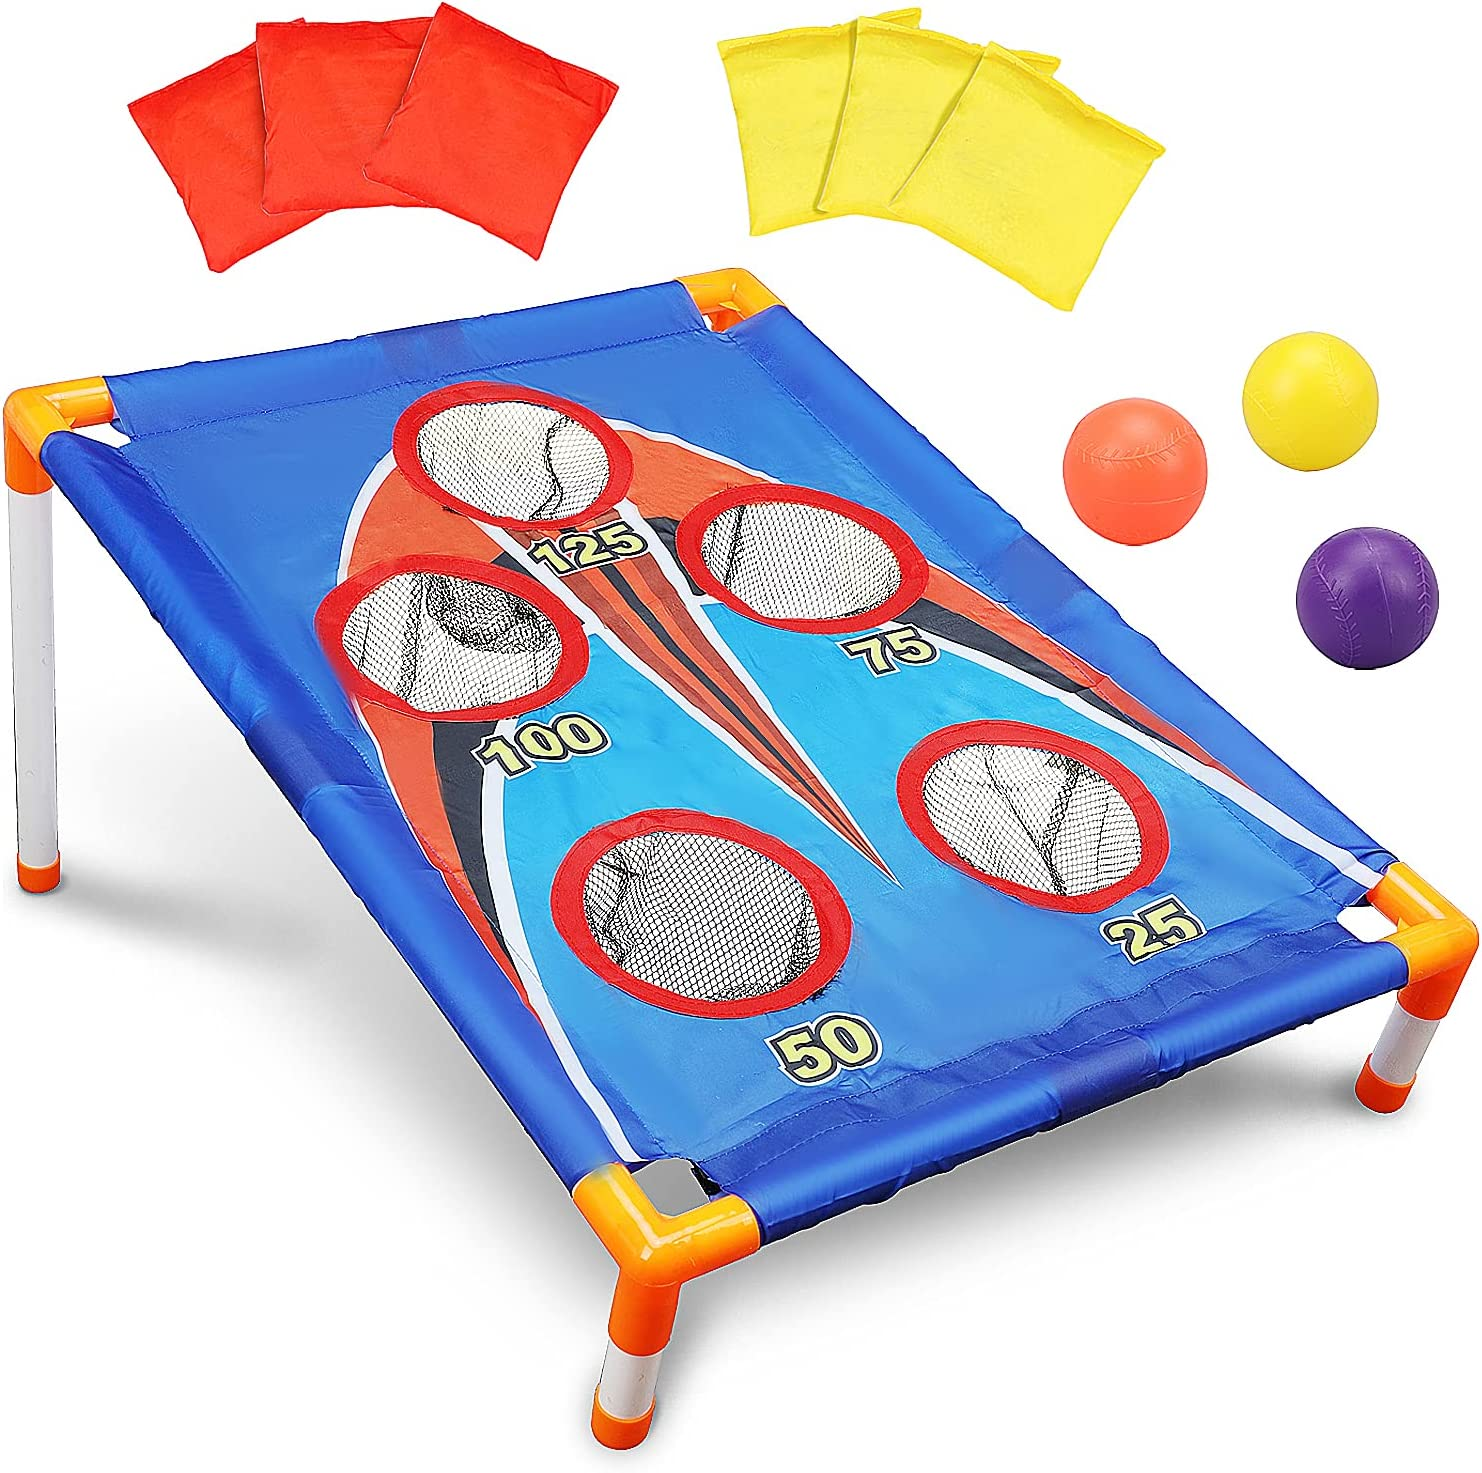 TOY Life Kids Cornhole Outdoor sale Games - Bag Ki for Bean Toss Game Outstanding